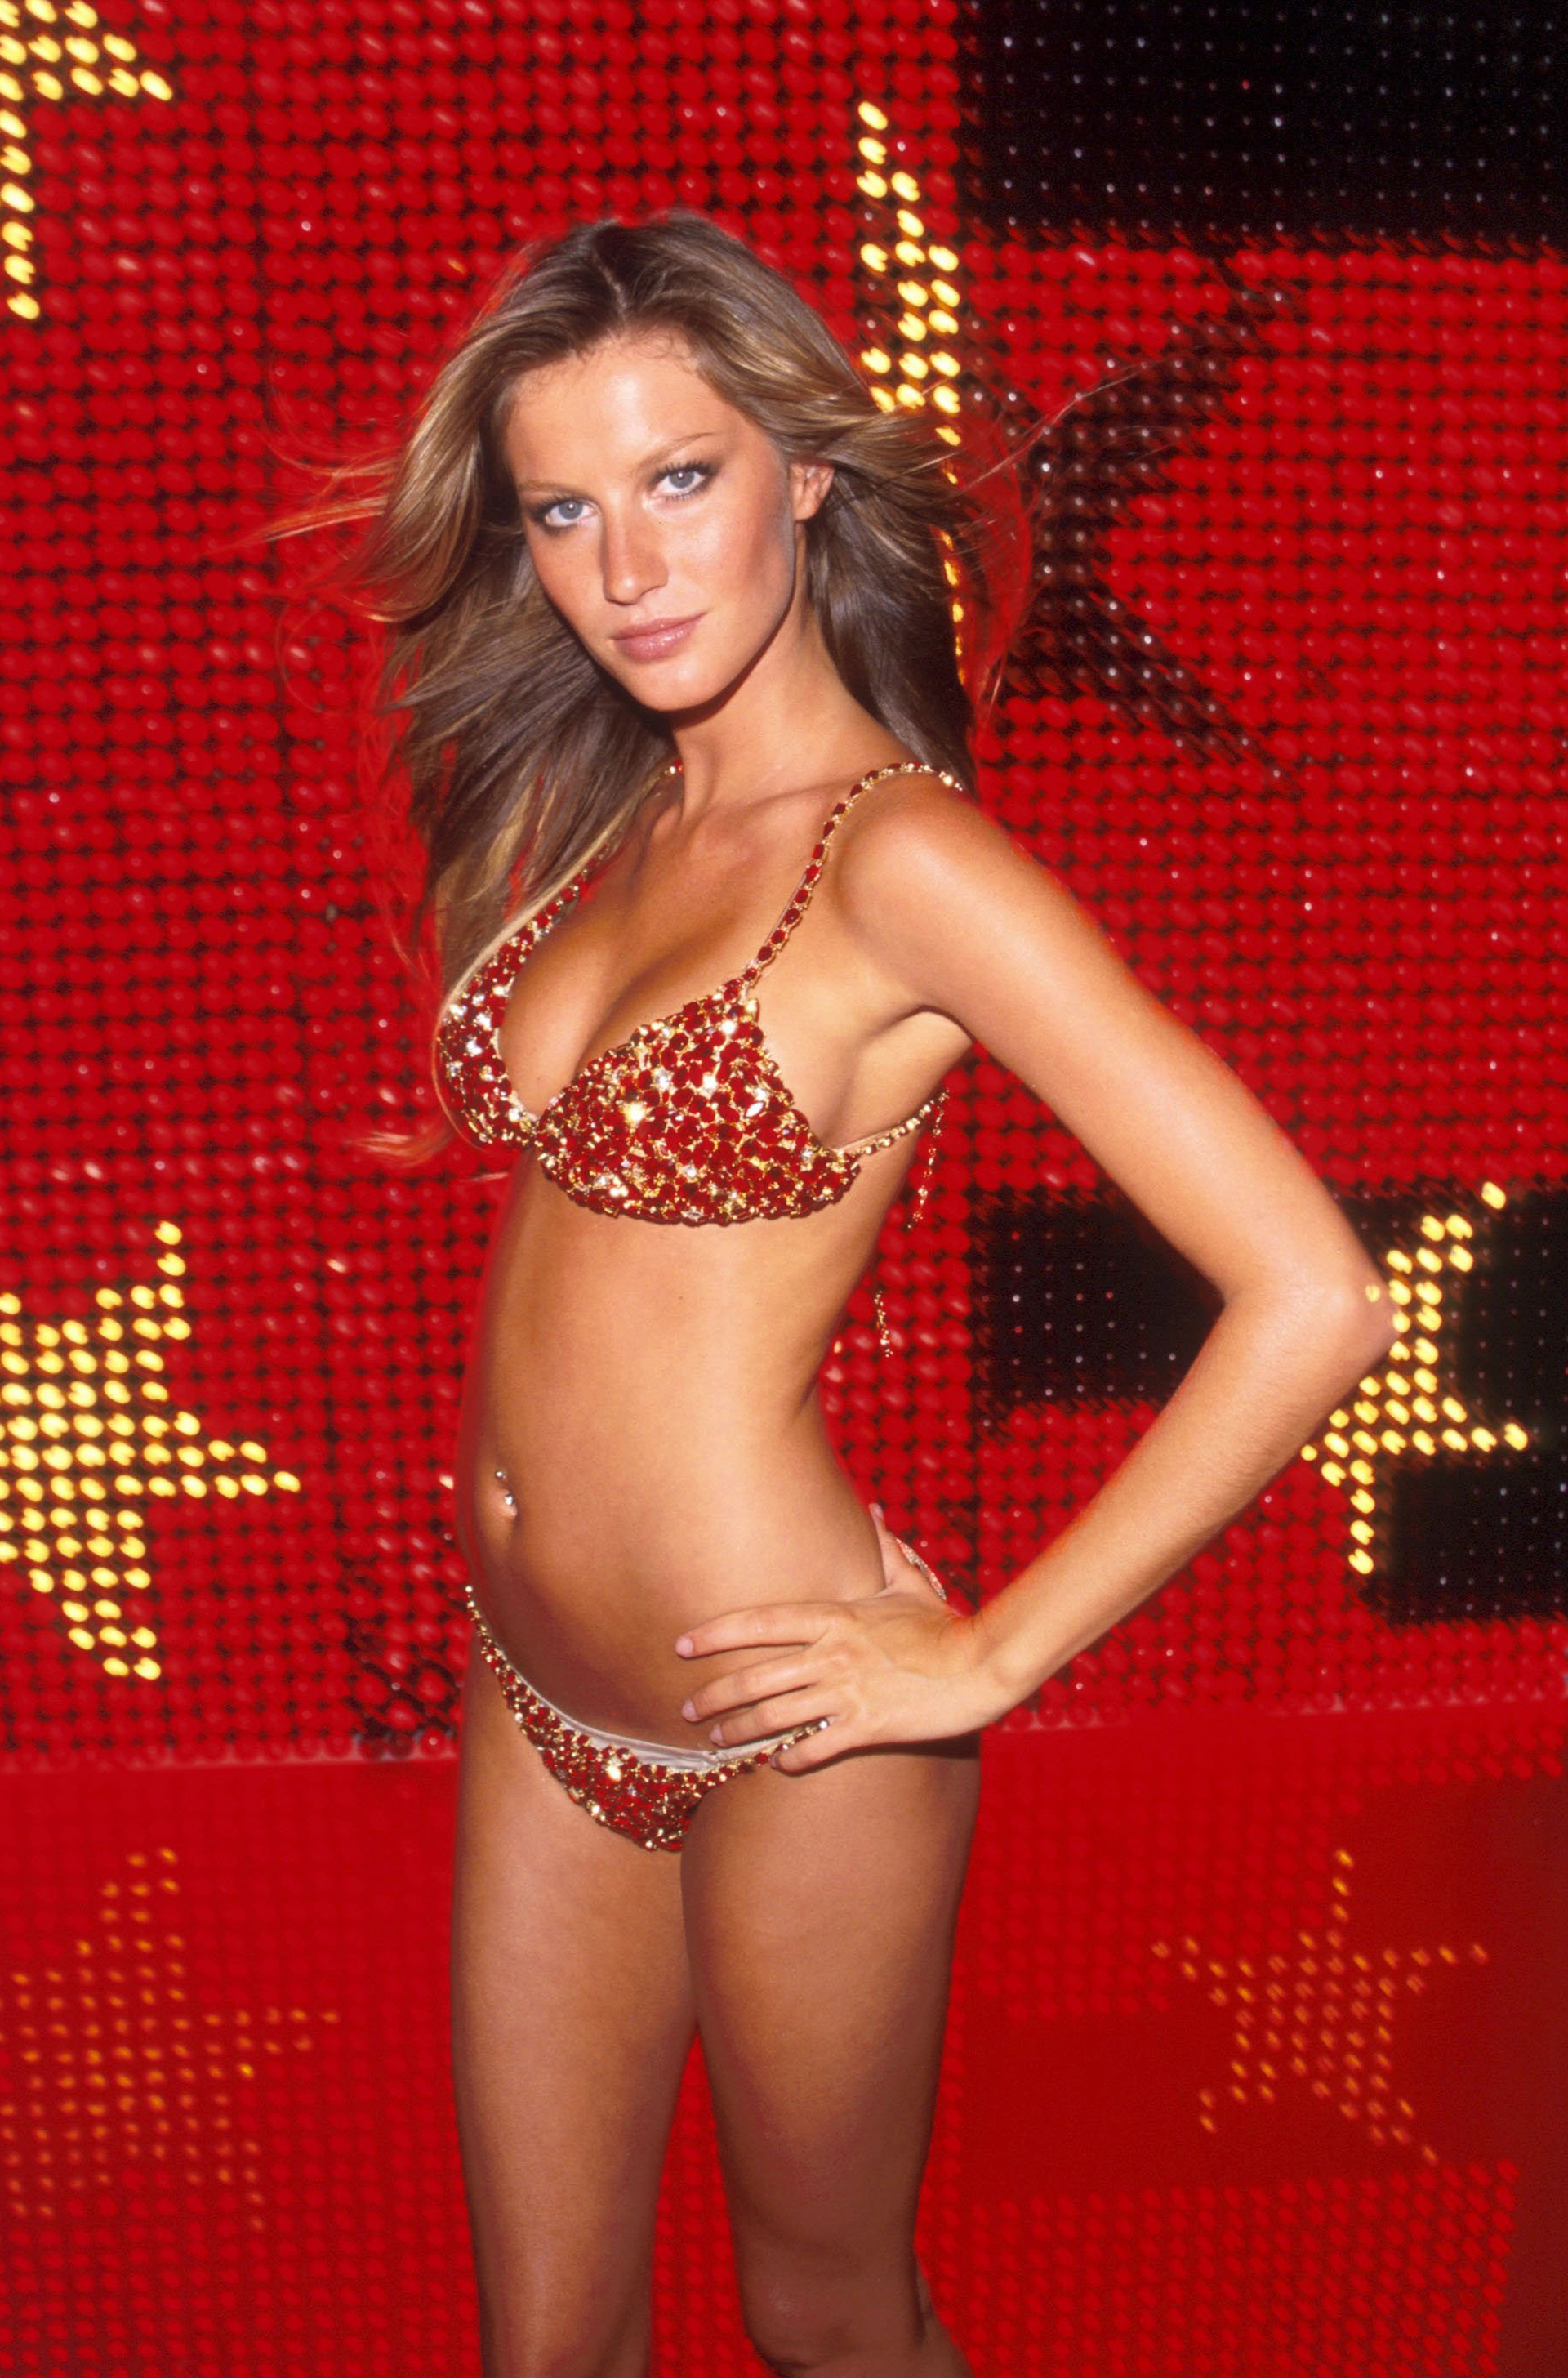 "2000: Gisele Bündchen, the Brazilian model, paraded for the first time the fantasy bra on the Victoria's Secret catwalk.  This was called ""Red Hot Fantasy Bra"", made with more than 1,300 gems, 300 pieces of Thai rubies and that same year it entered the Guinness Record for being the most expensive piece of lingerie in the world.  Its value was USD 15,000,000."